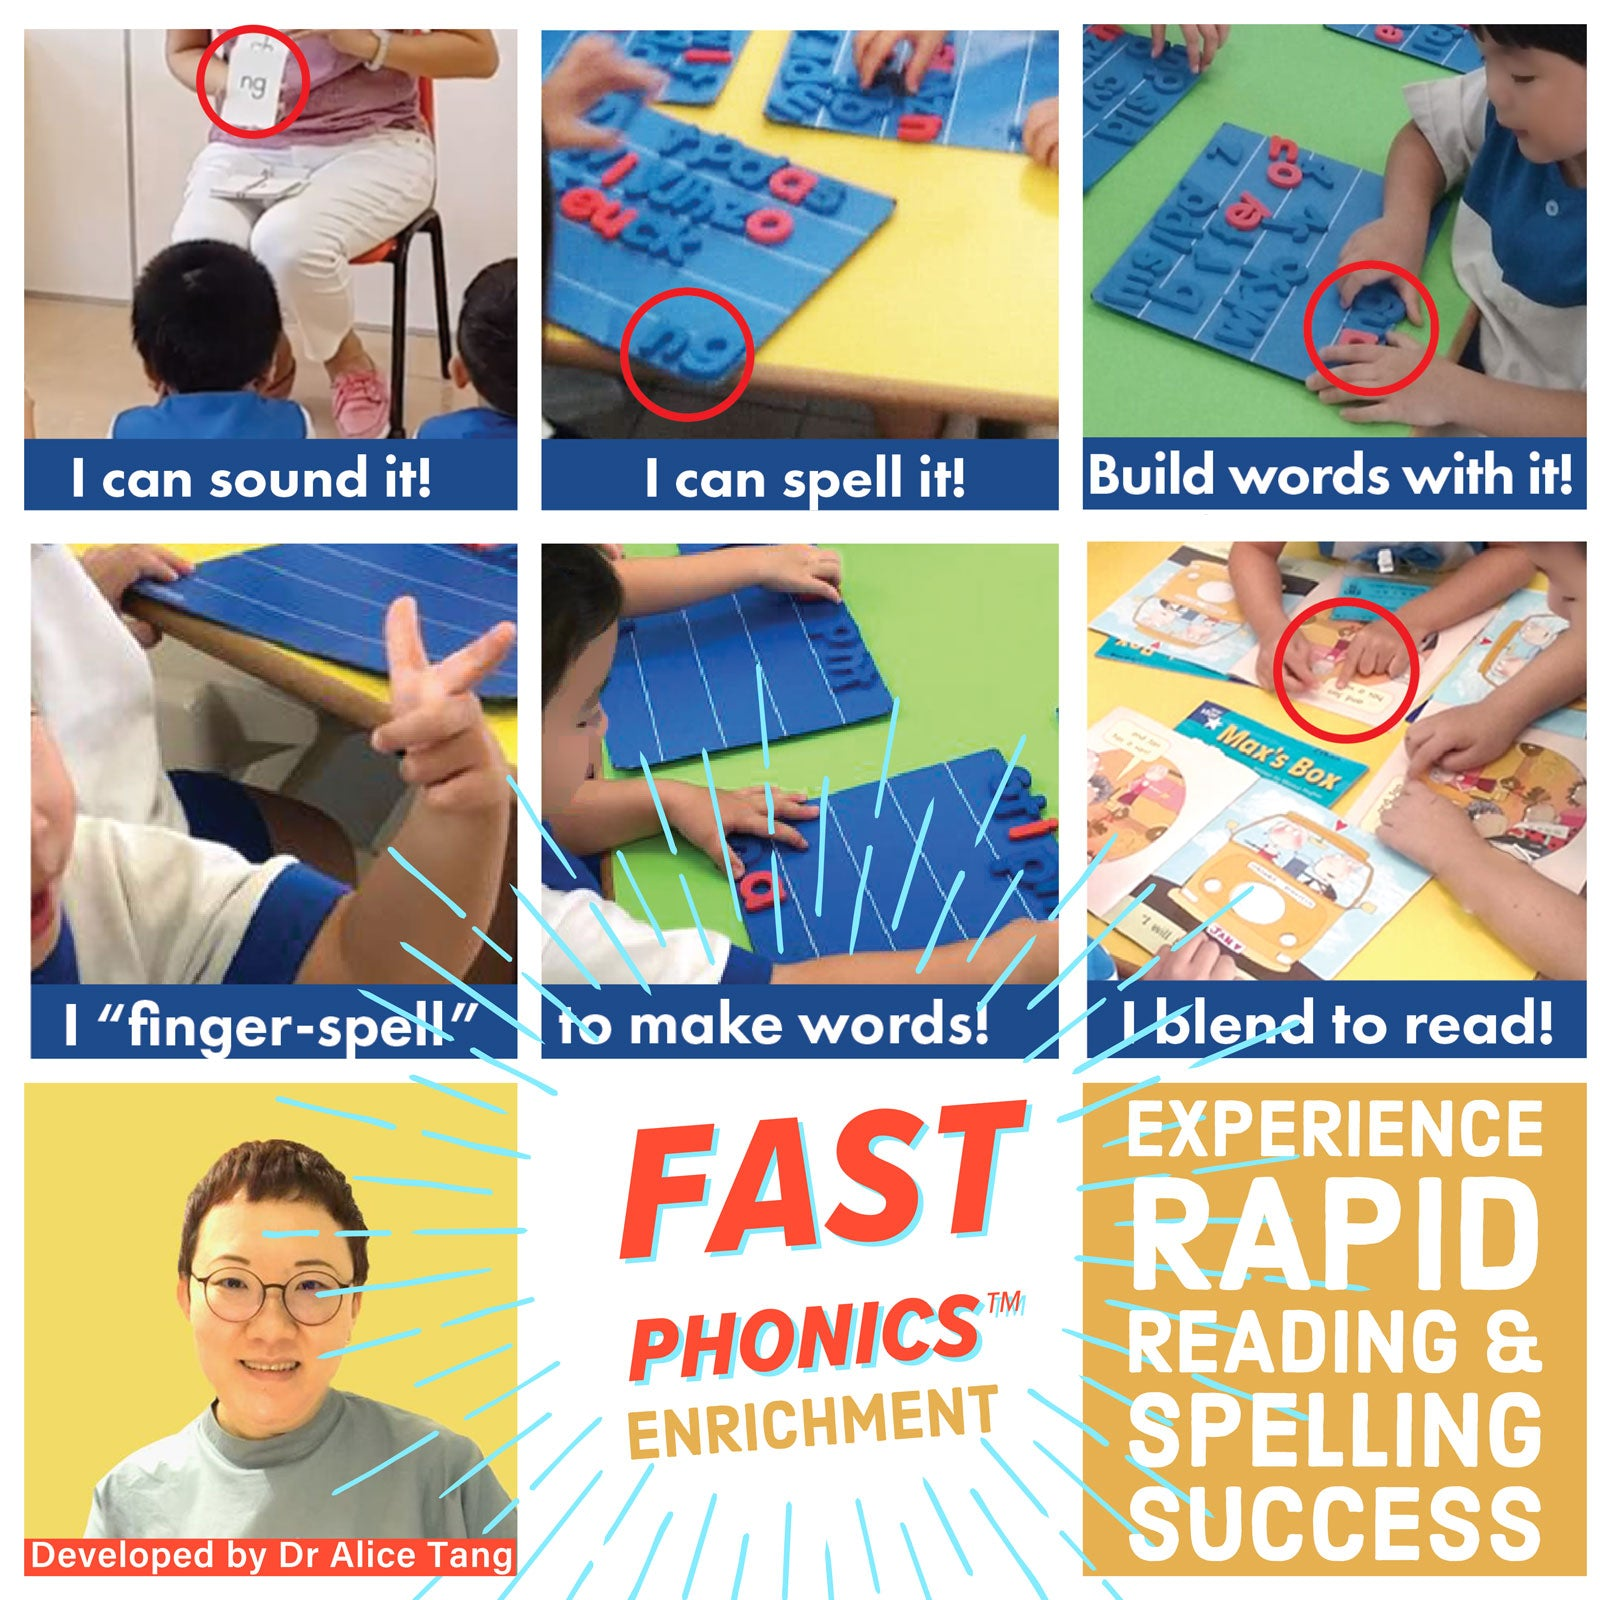 FAST Phonics Enrichment for Schools